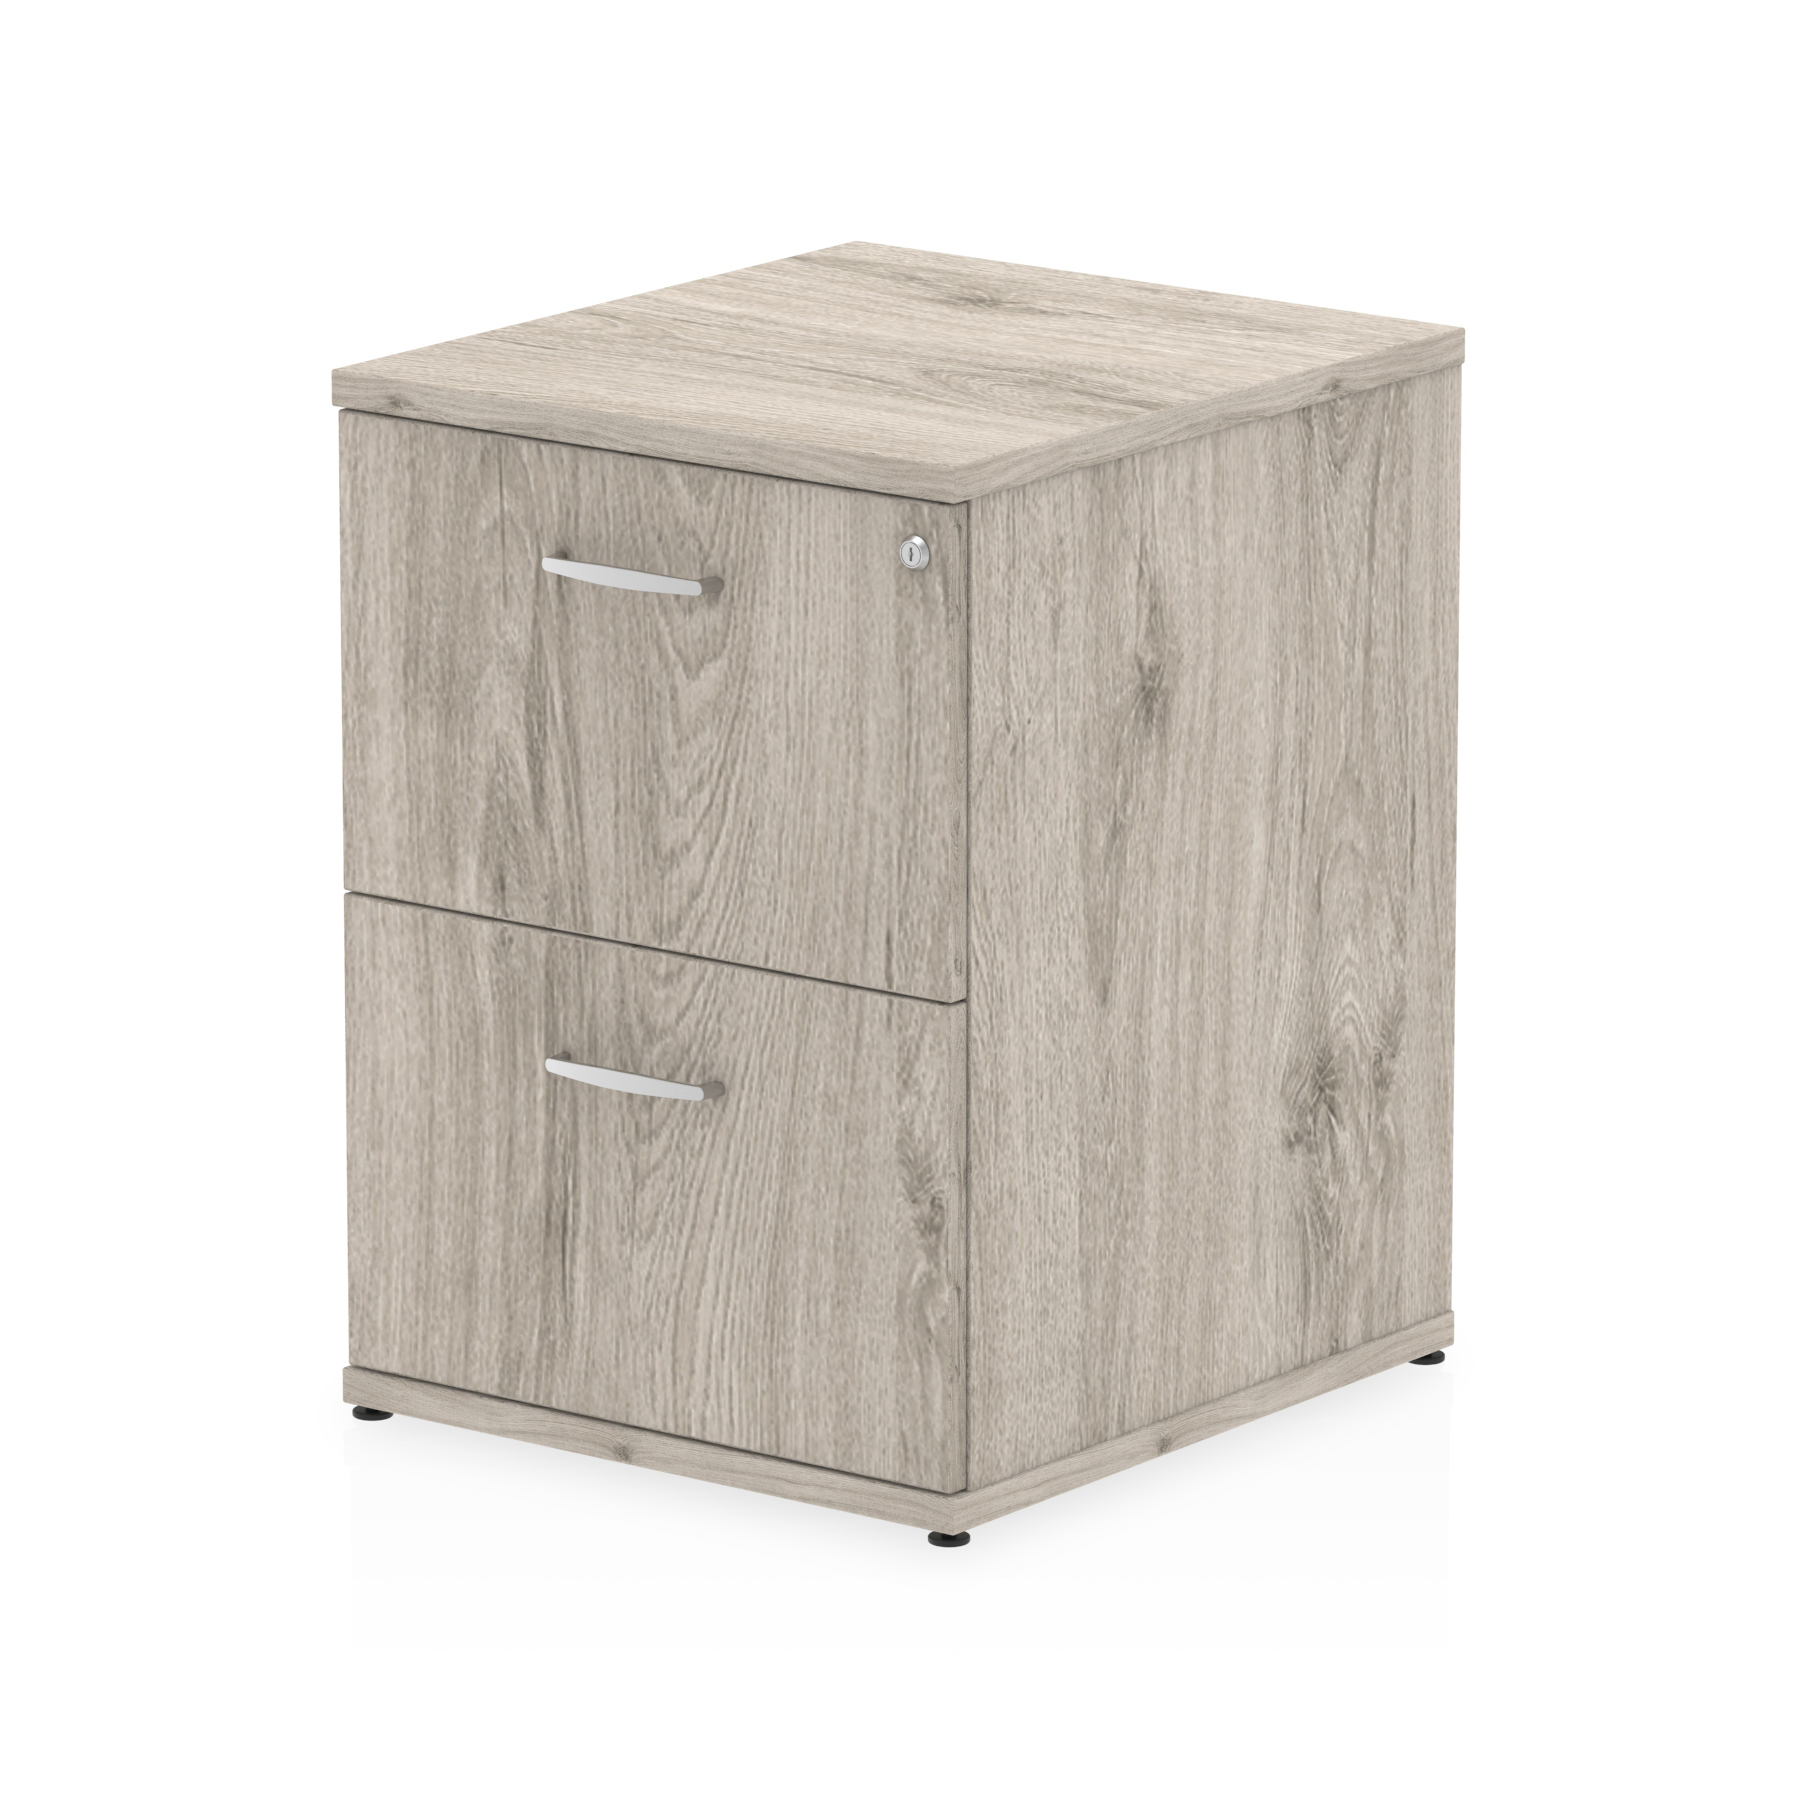 Filing cabinets or accesories Trexus 2 Drawer Filing Cabinet 500x600x800mm Grey Oak Ref I003241